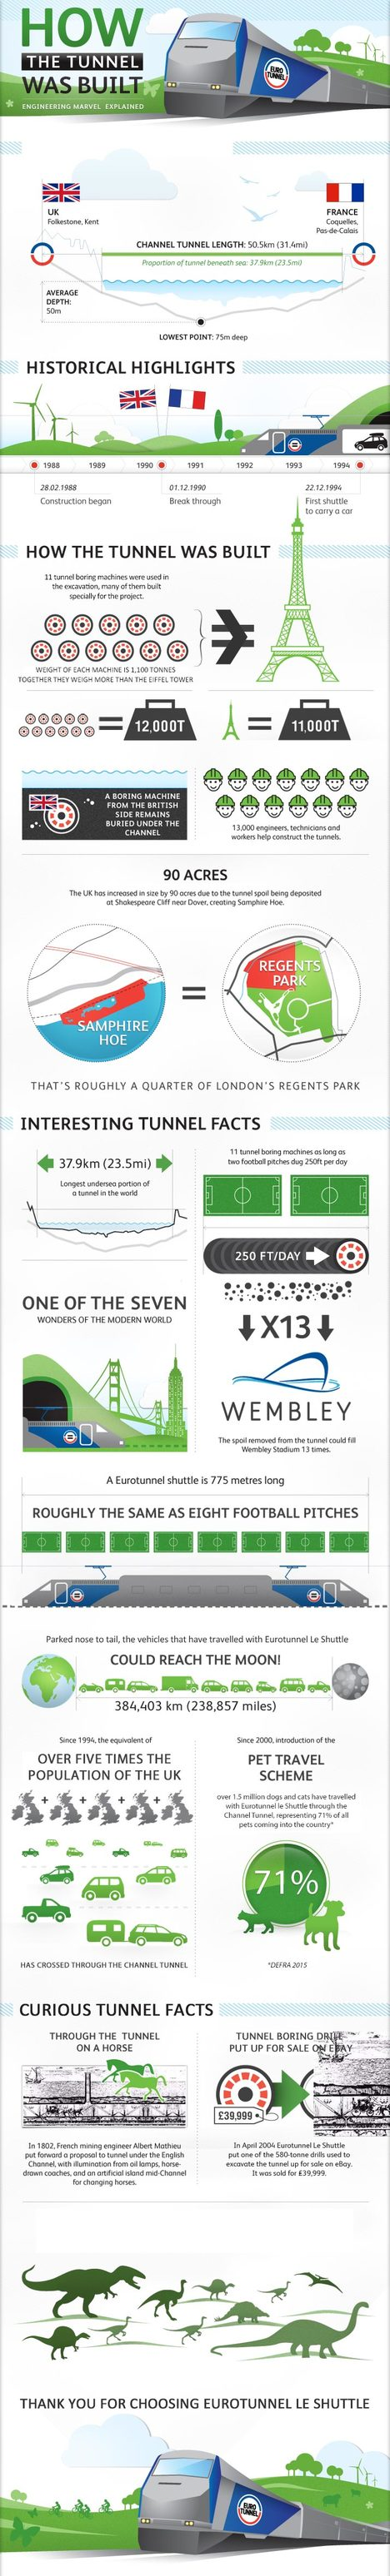 How the Channel Tunnel was Built